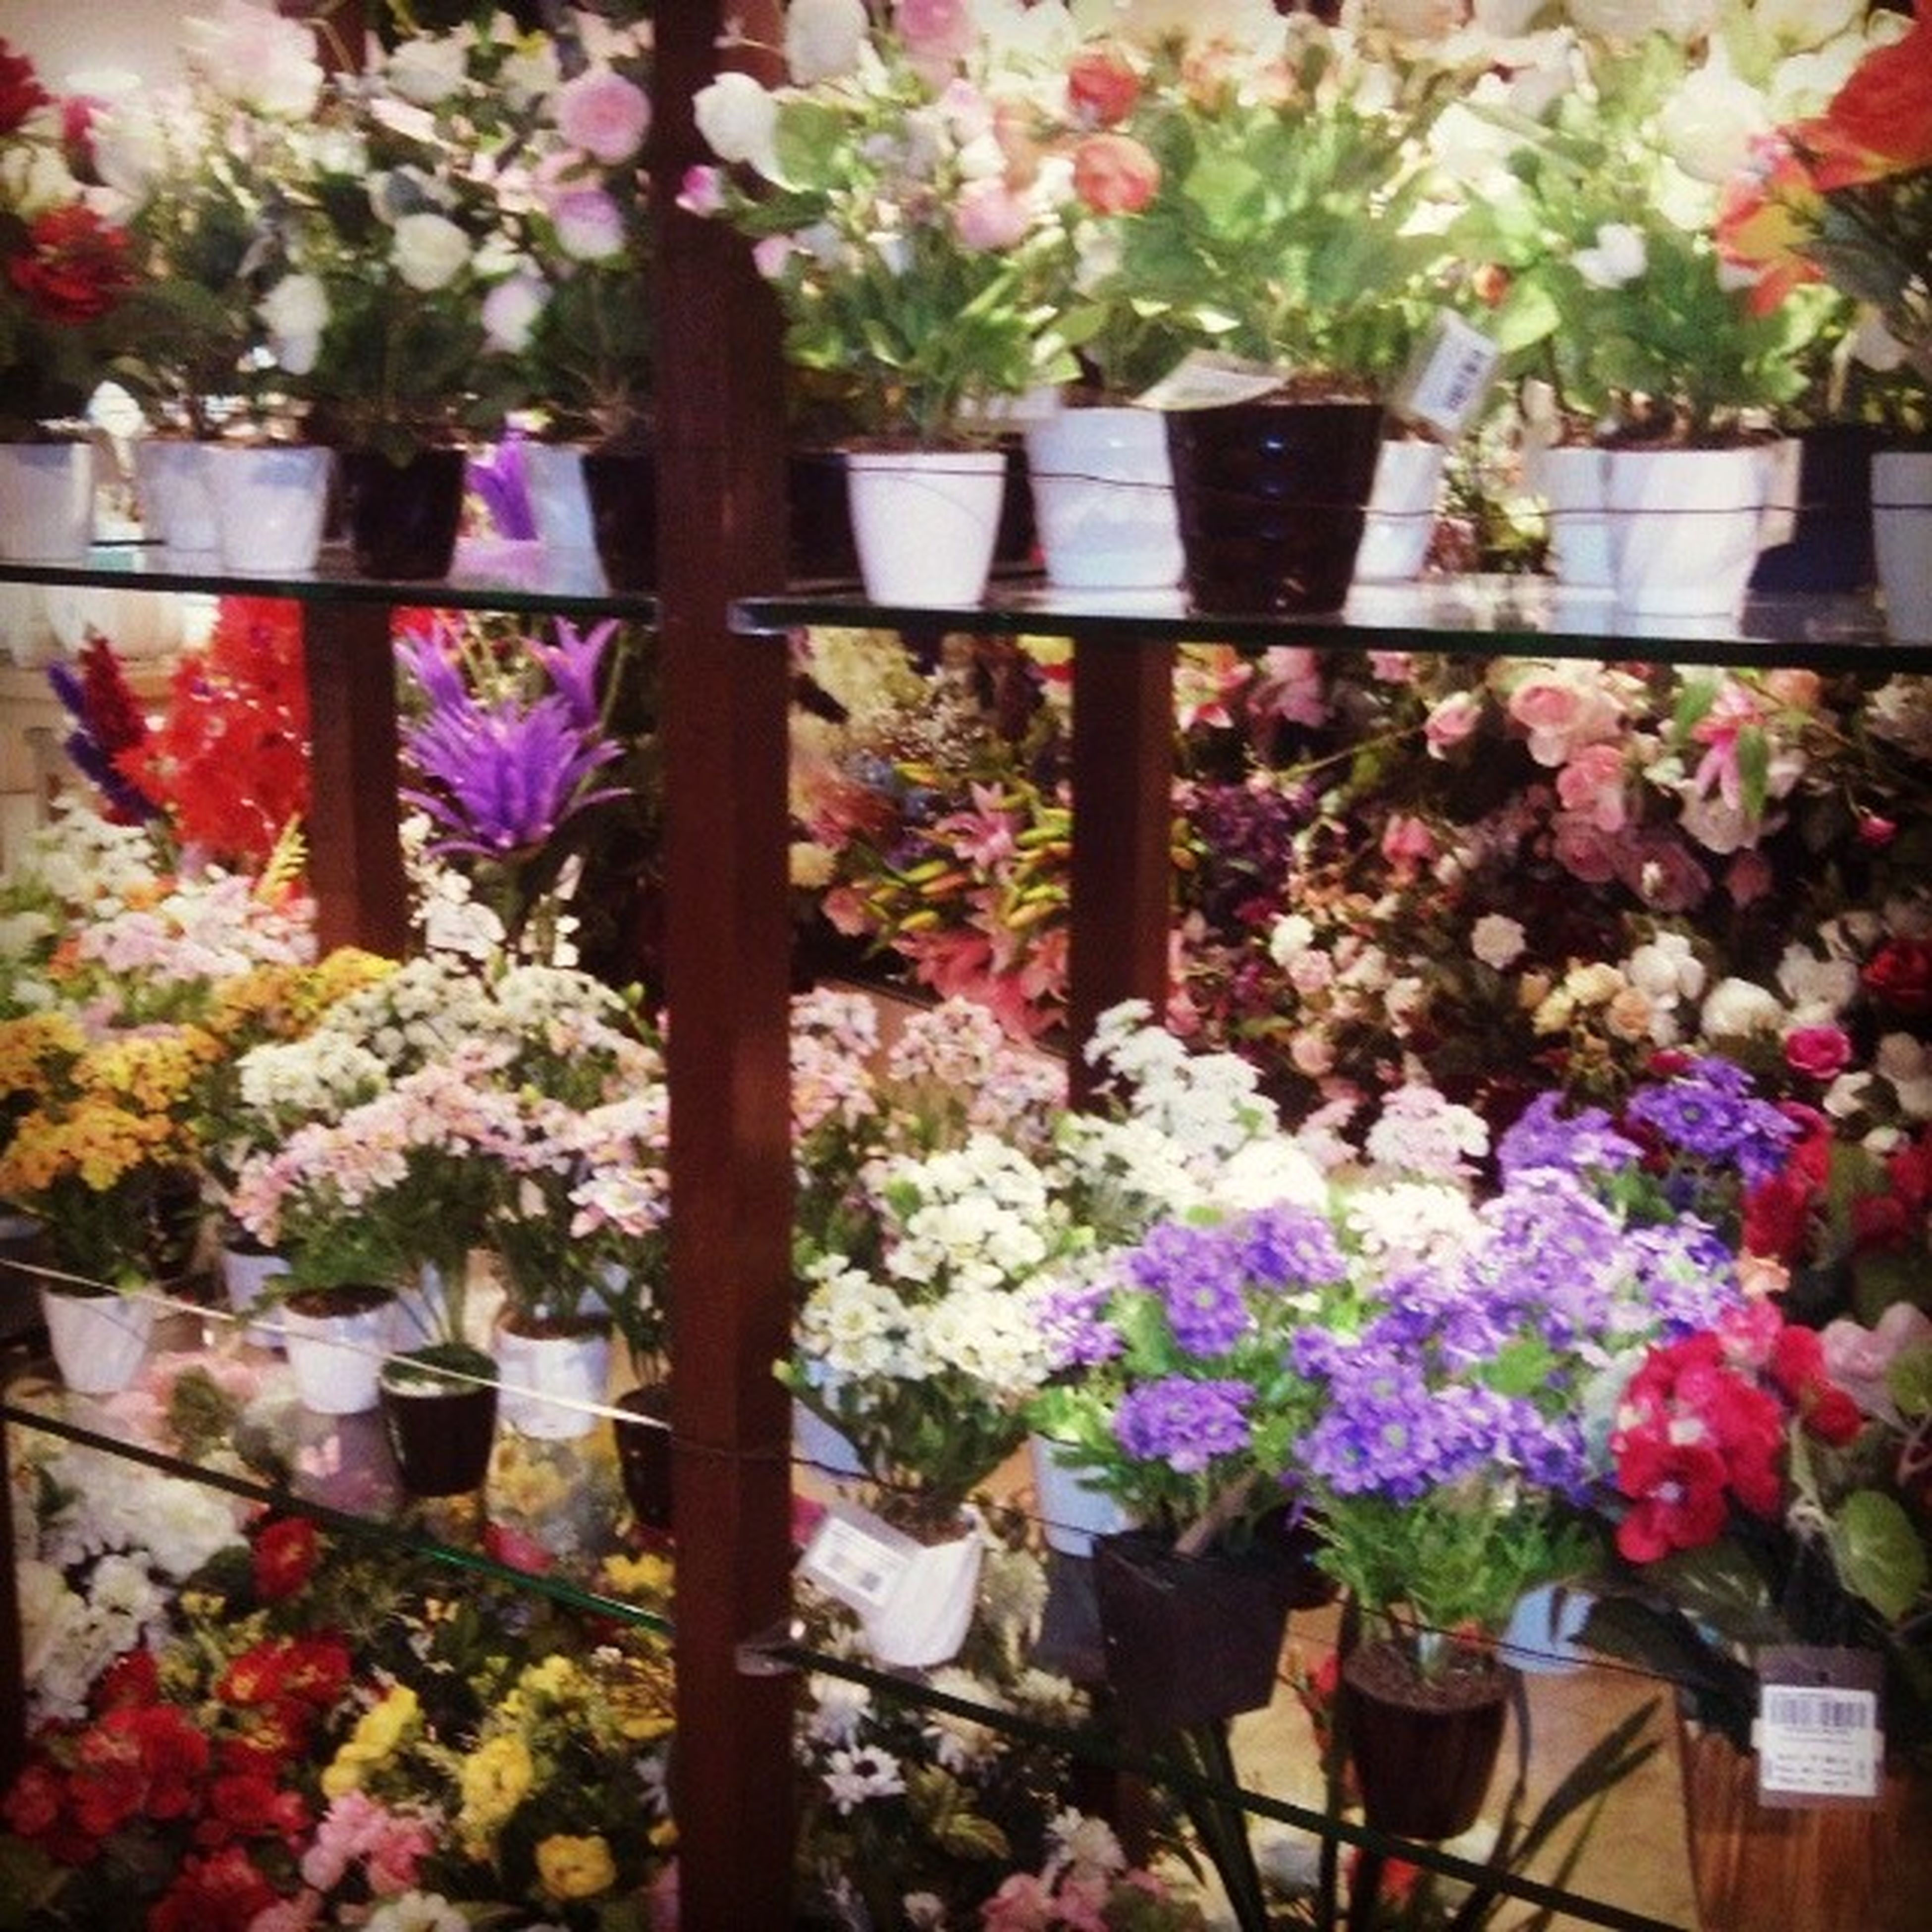 flower, freshness, variation, fragility, abundance, growth, multi colored, plant, choice, arrangement, beauty in nature, for sale, potted plant, nature, pink color, retail, petal, large group of objects, bunch of flowers, hanging